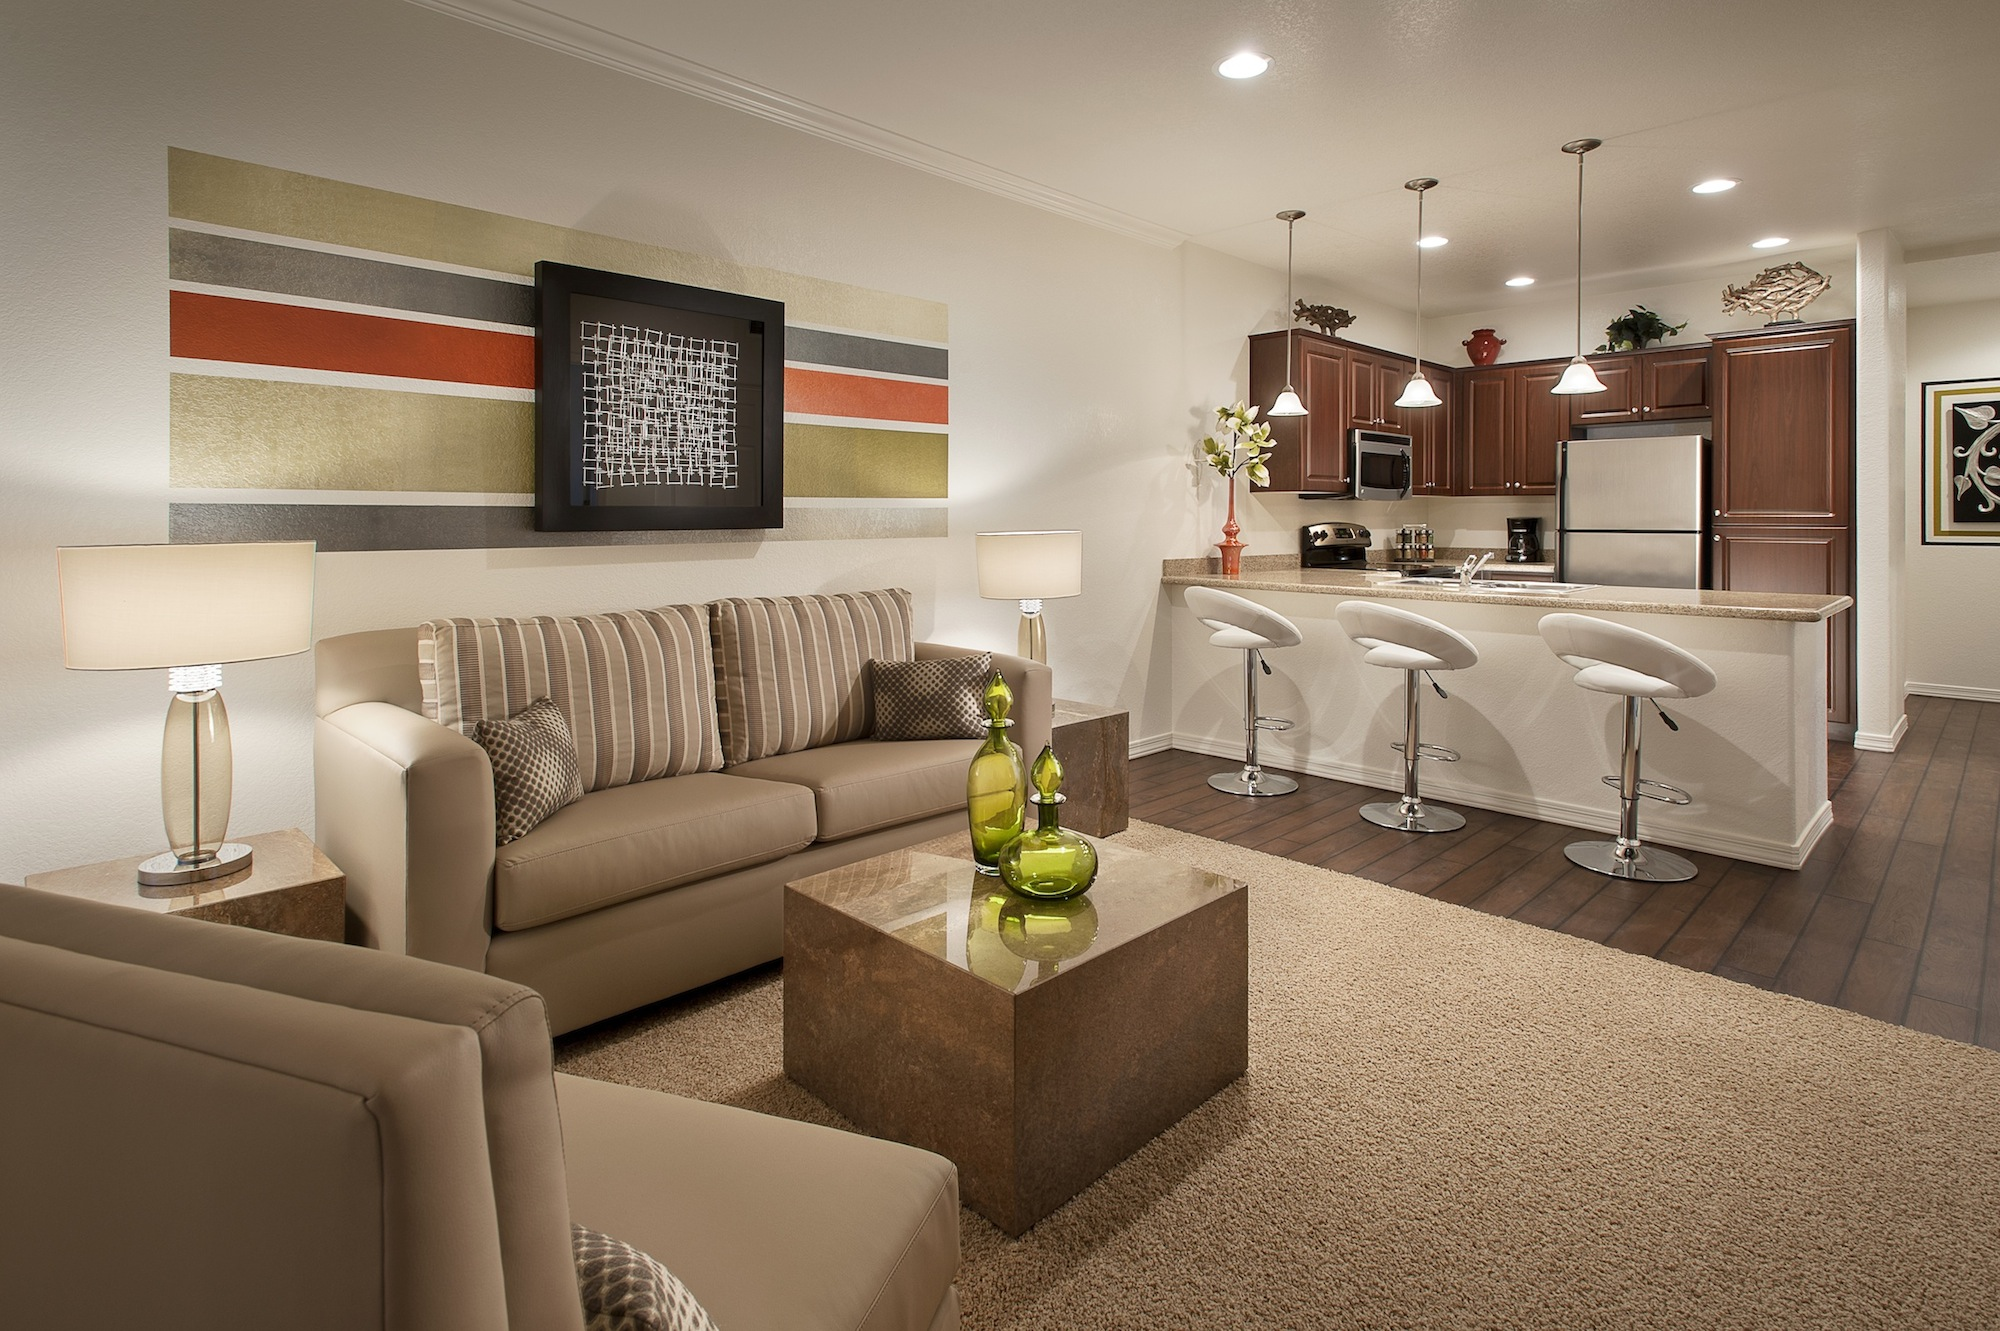 Luxury Apartment of the Month in Chandler: Parcland Crossing